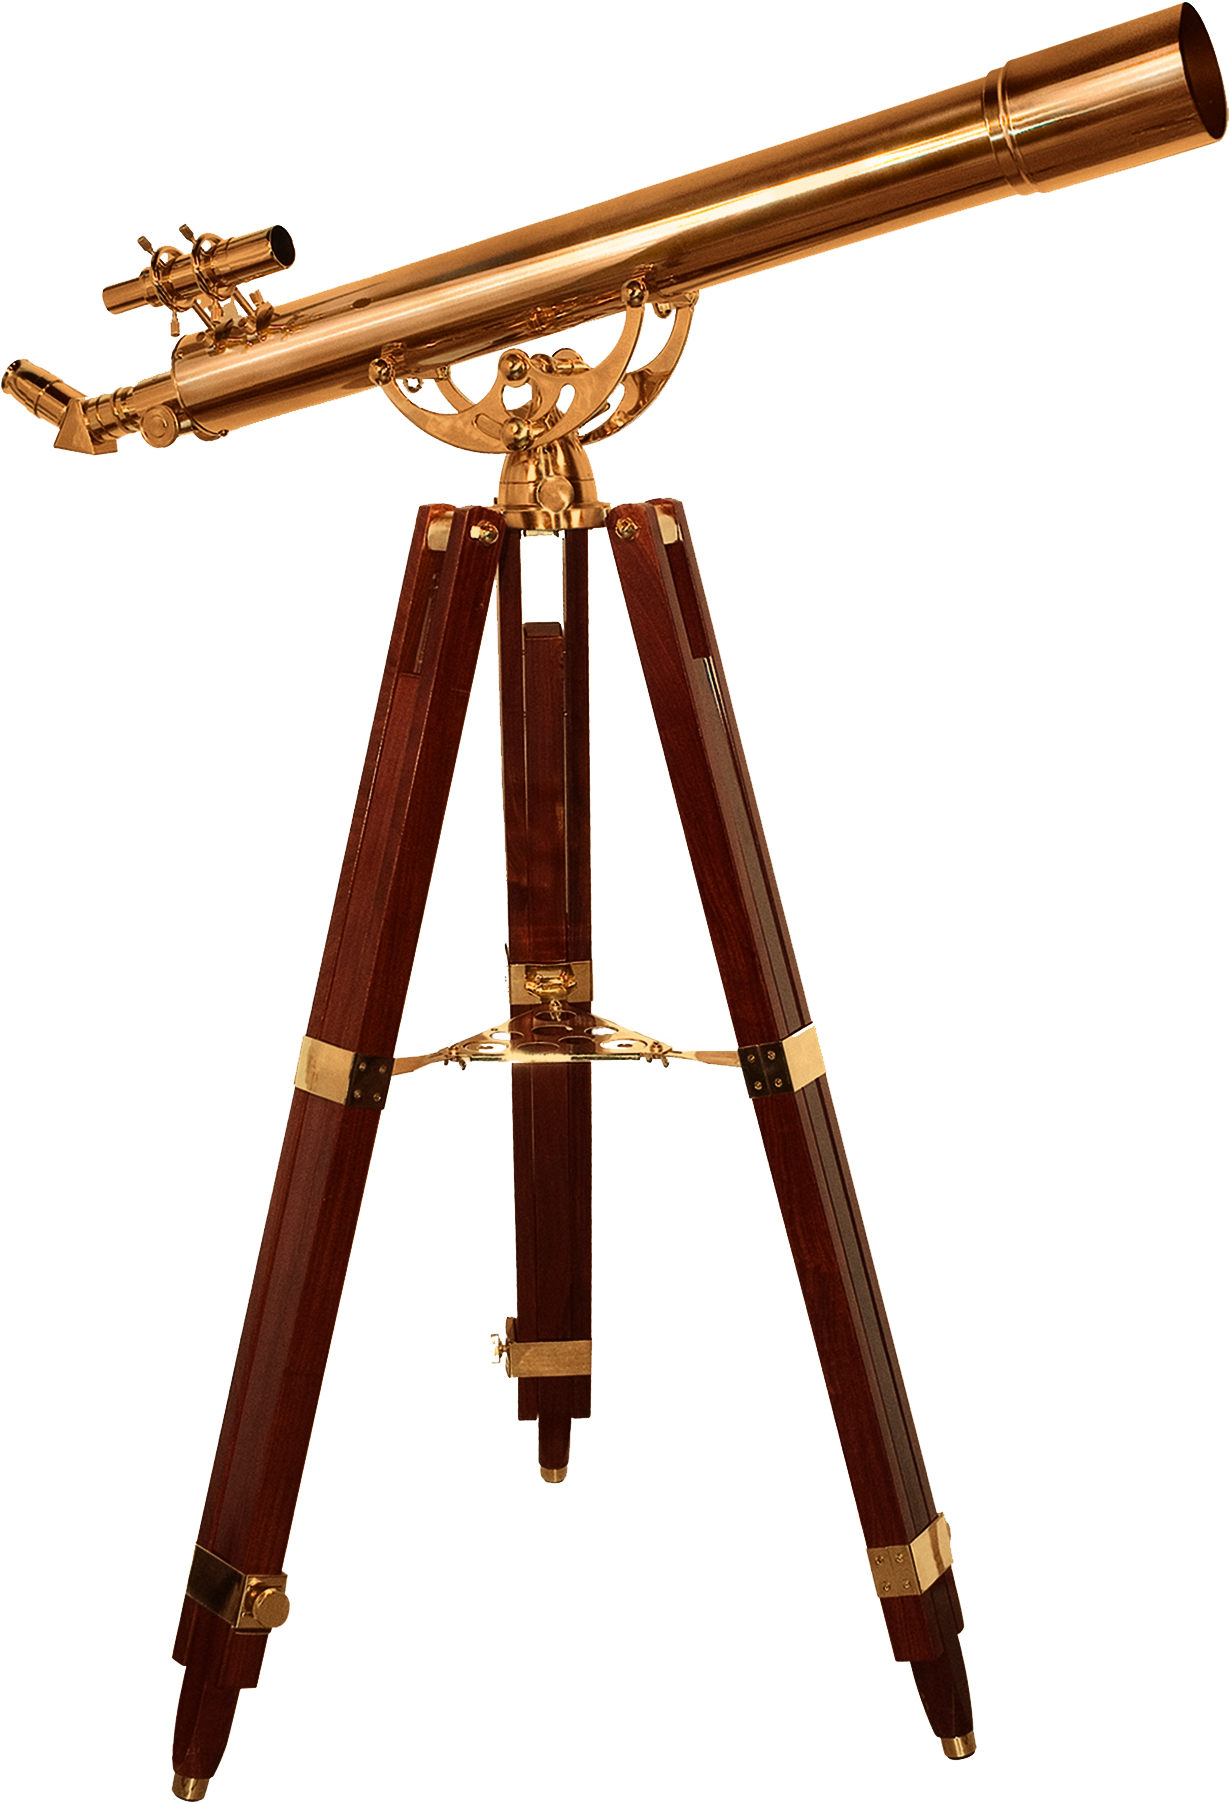 telescope_product